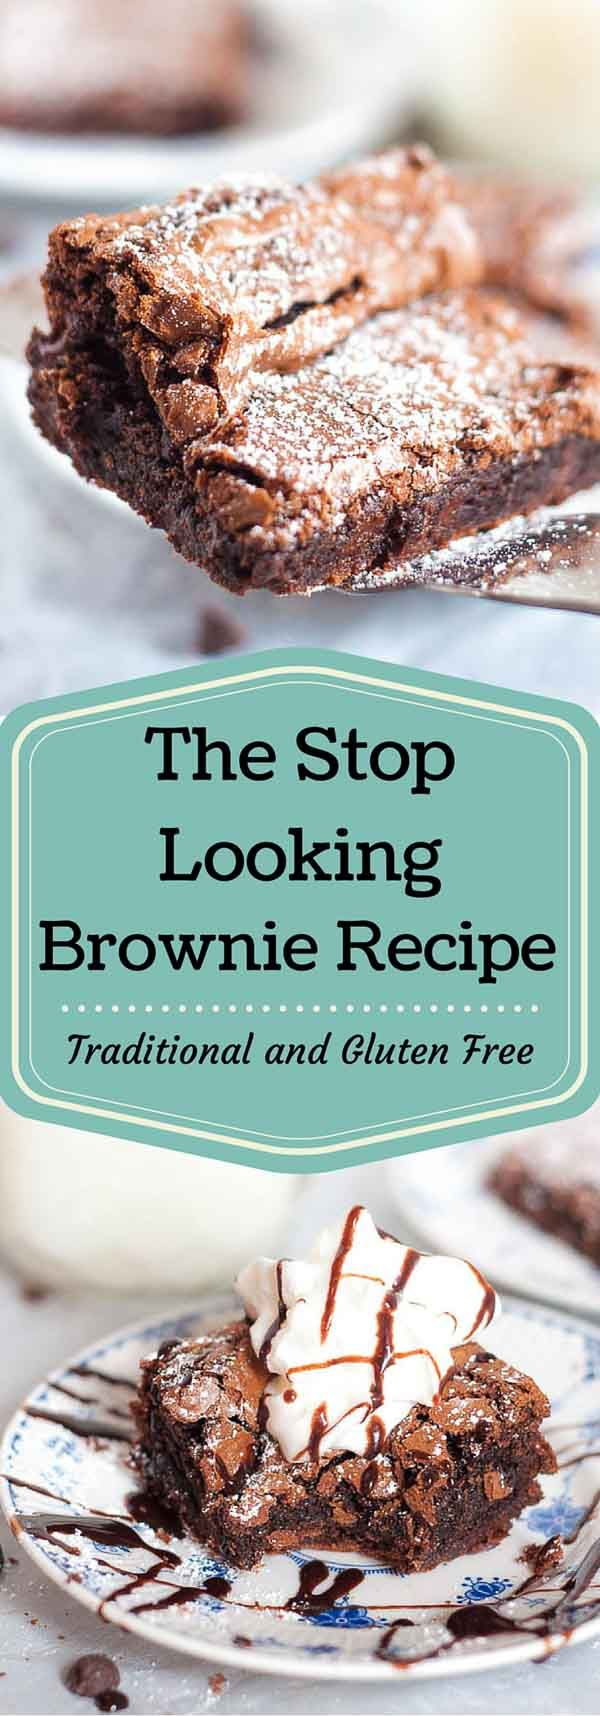 Everyone wants to find their go to, perfect brownie recipe. Here it is, so STOP LOOKING! The Stop Looking Brownie Recipe is chewy and fudgy with a crunchy top coating. Perfection! http://www.mamagourmand.com